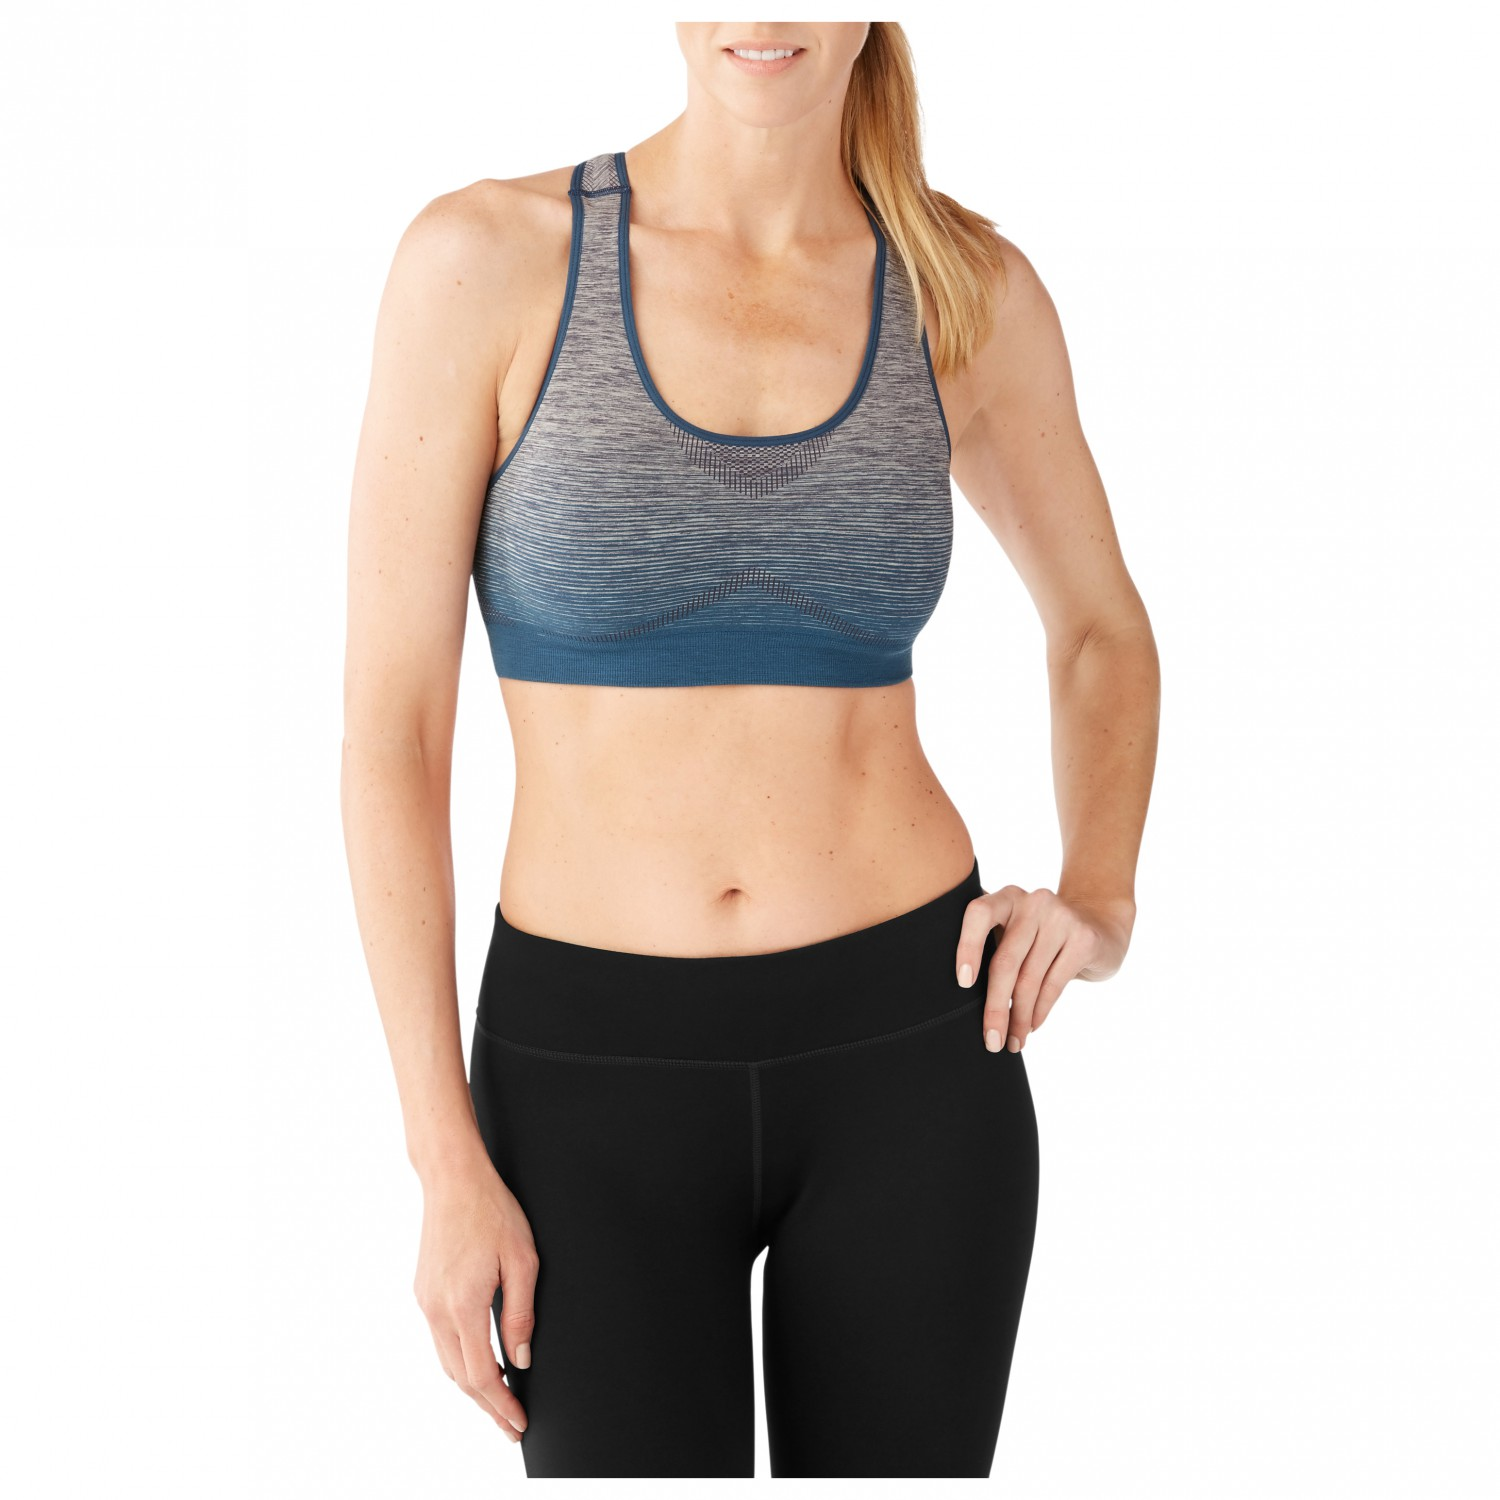 13d3439171ef6 ... Smartwool - Women s PhD Seamless Racerback Bra - Sports ...